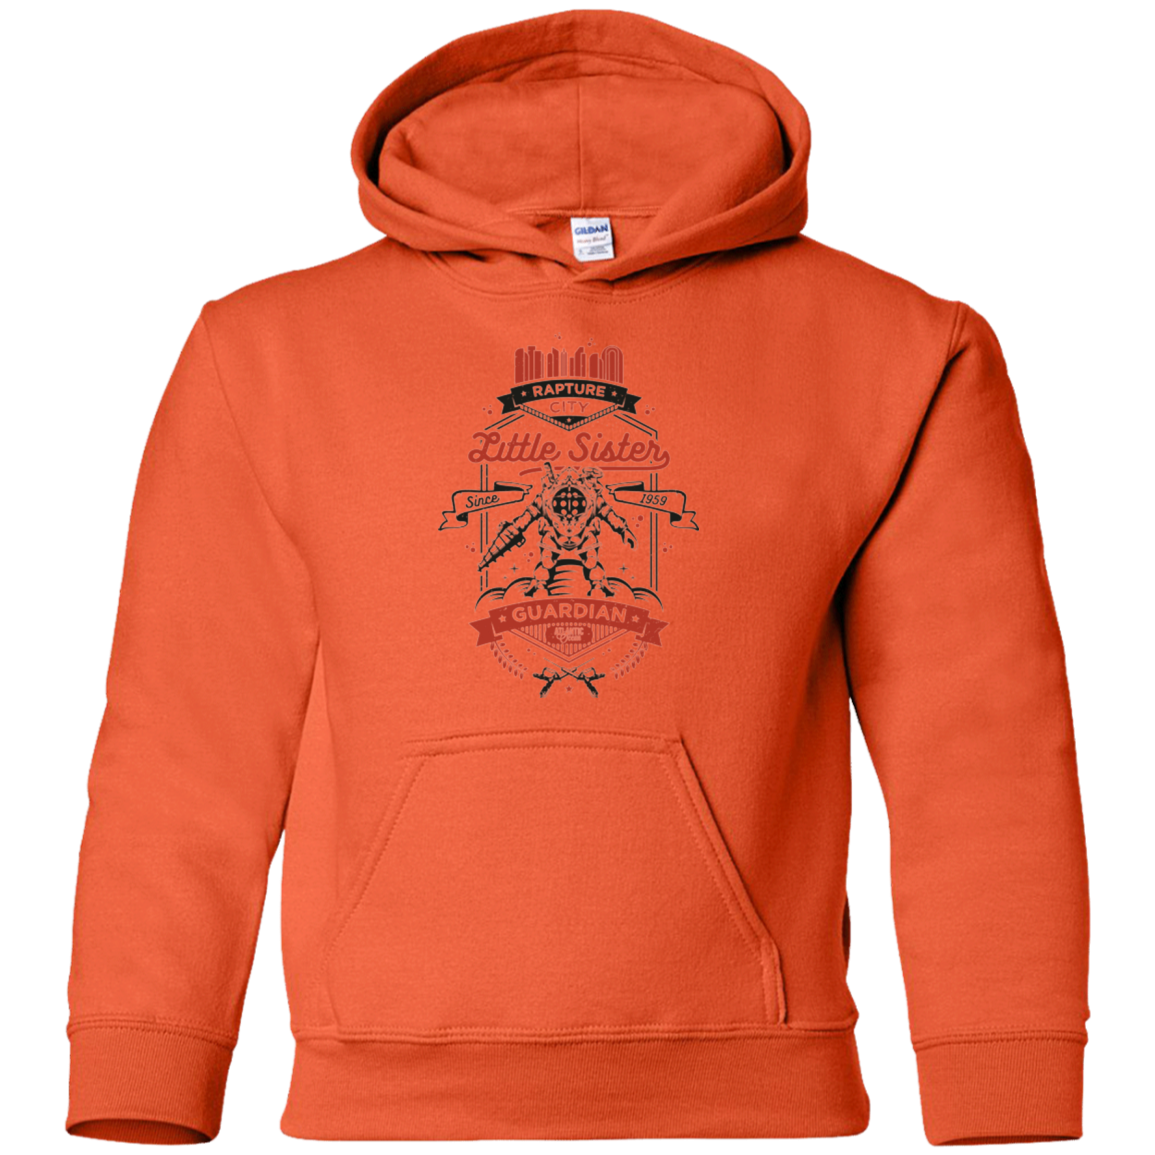 Little Sister Protector V2 Youth Hoodie